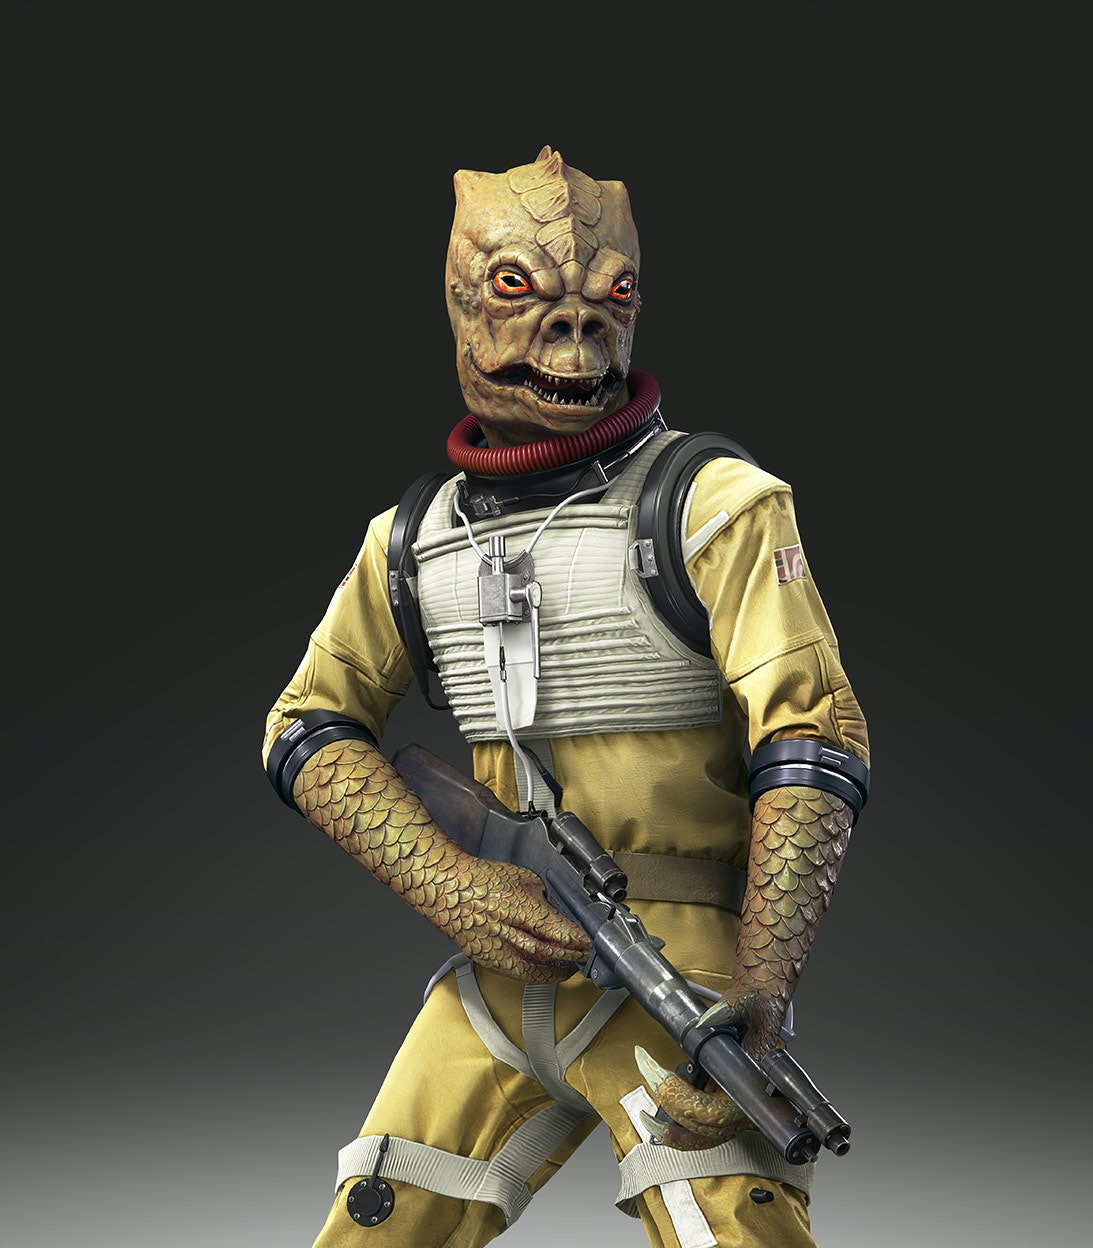 Image Bossk - Star Wars Battlefront